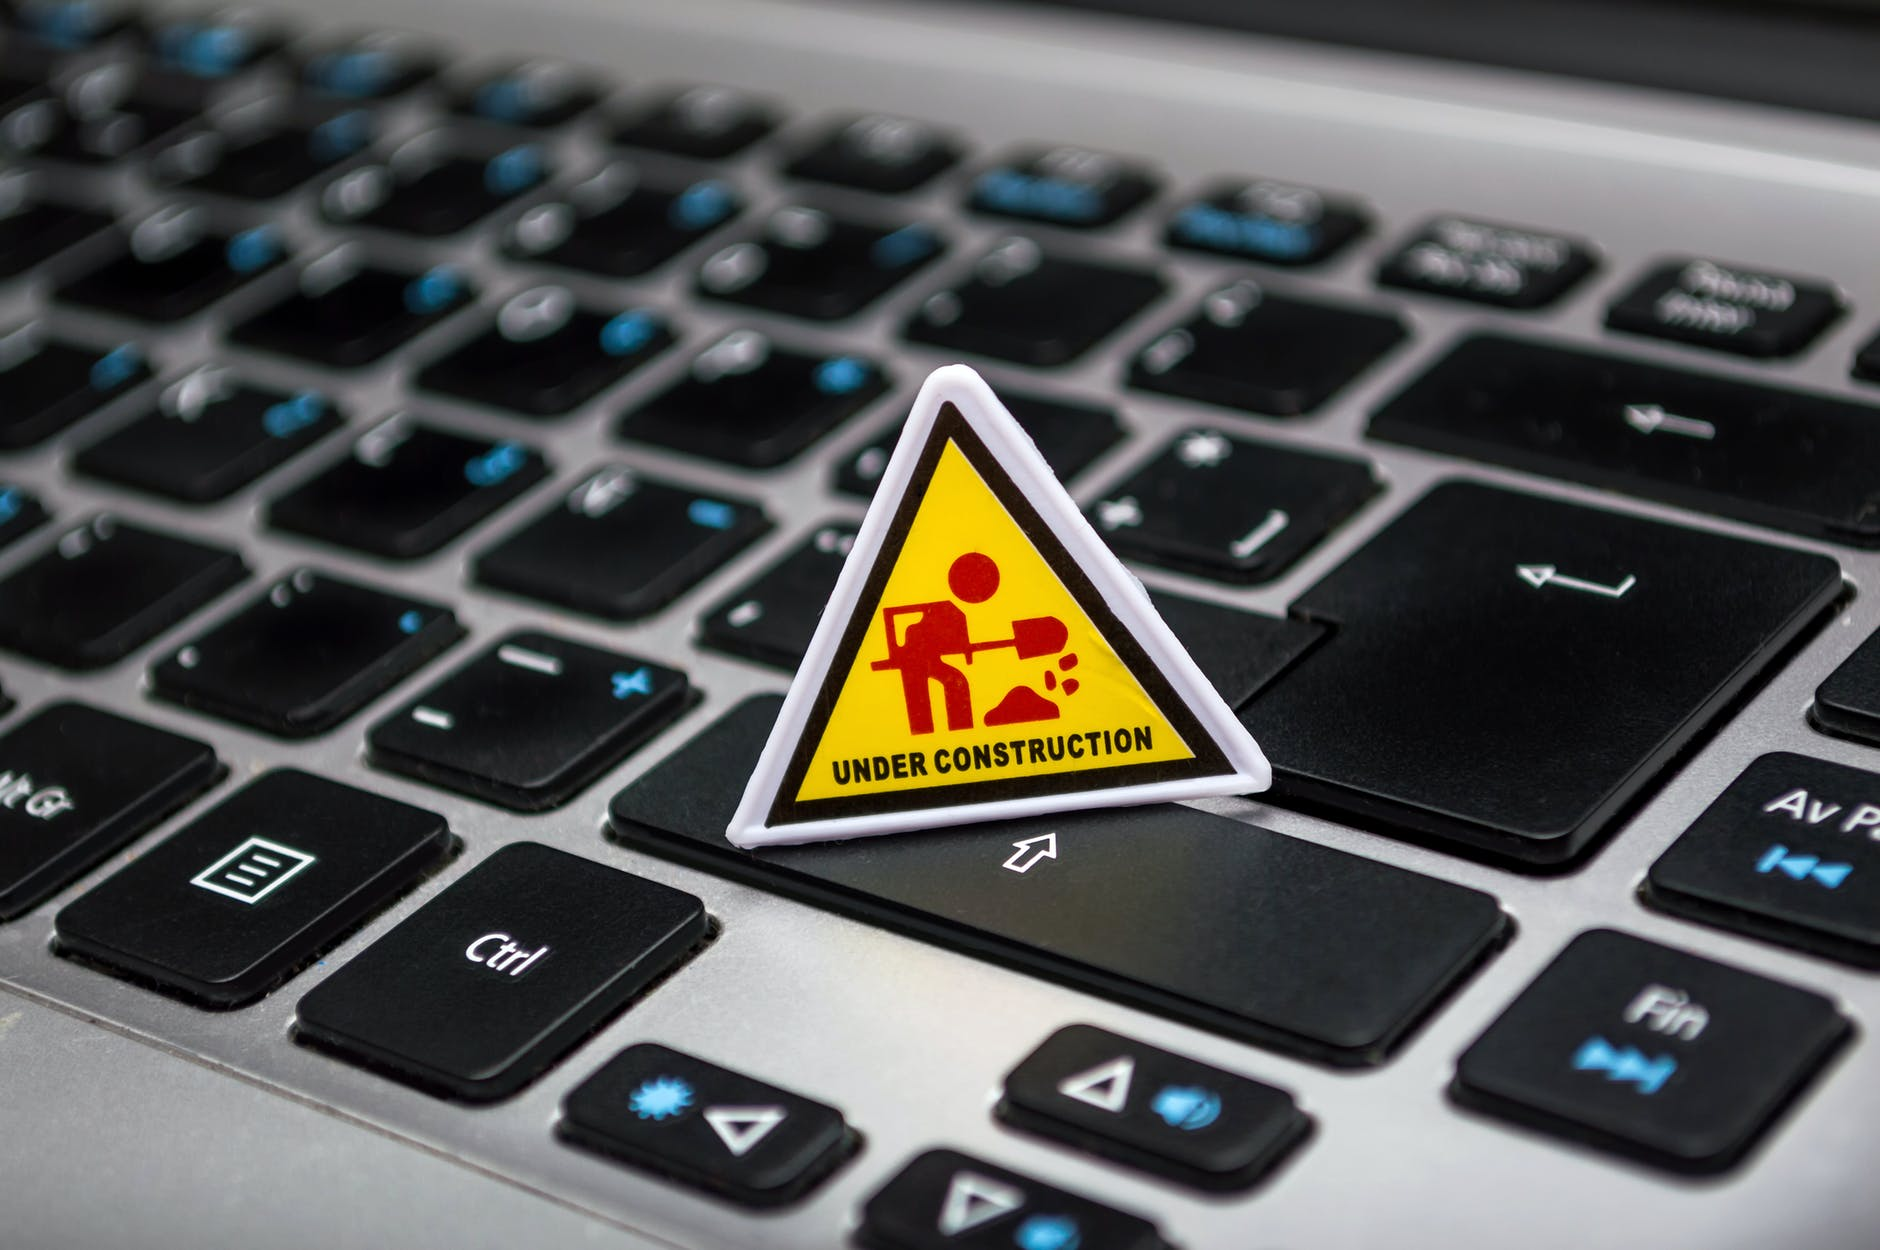 an under construction warning triangle placed on a laptop keyboard